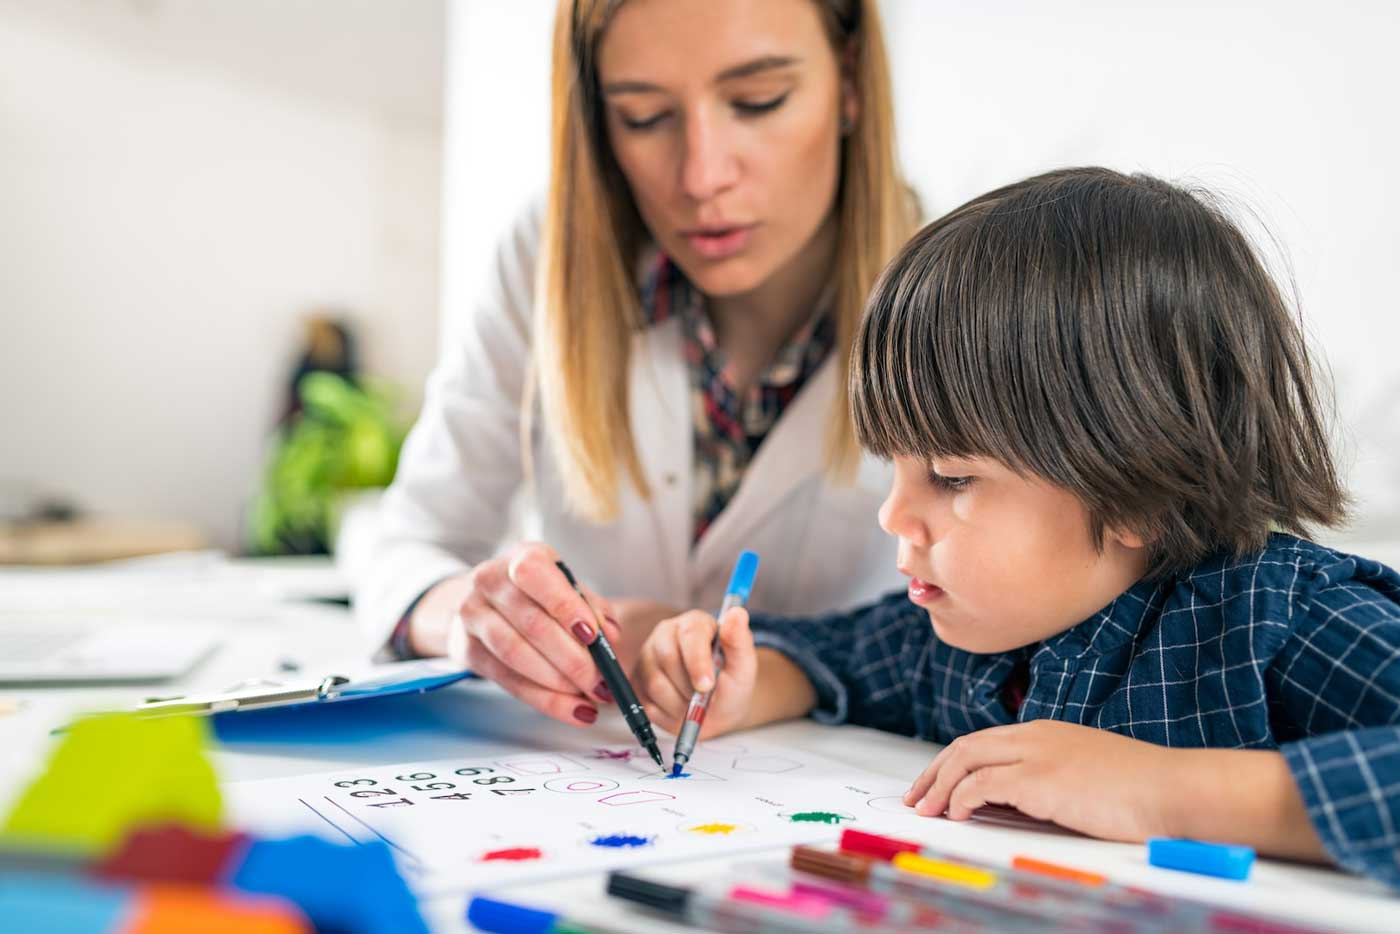 Photograph of child and therapist drawing together